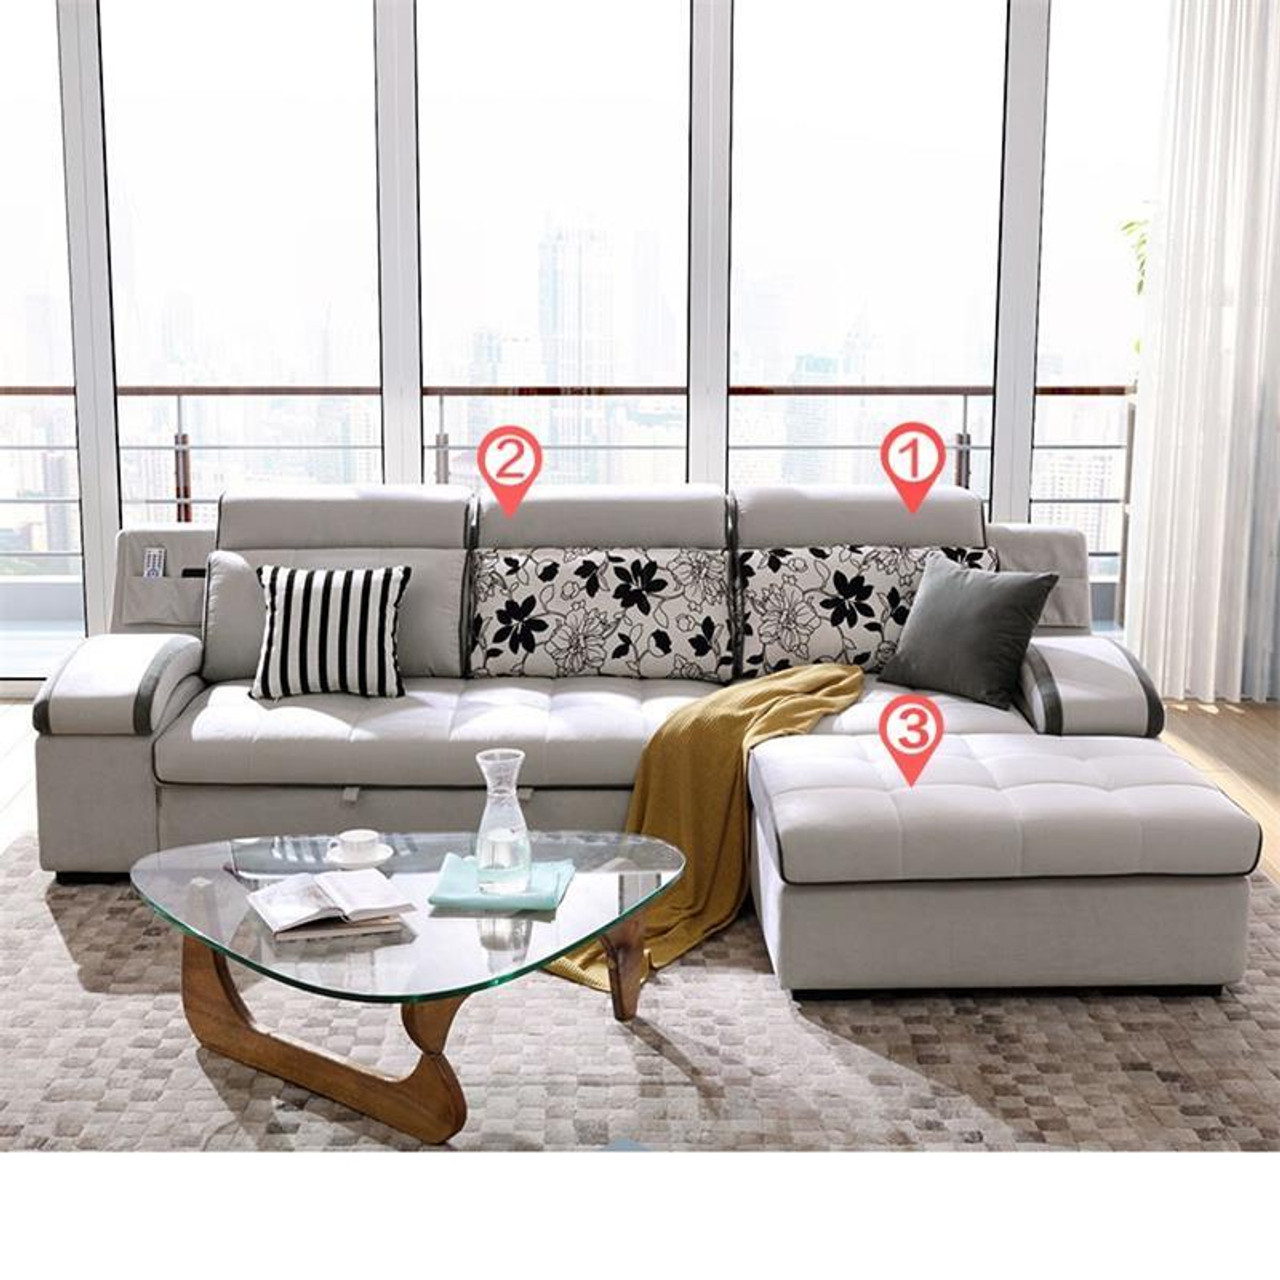 Mobili Furniture Copridivano Meble Meuble De Maison Couch Puff Mobili Per La Casa Pouf Moderne Mobilya Mueble Set Living Room Furniture Sofa